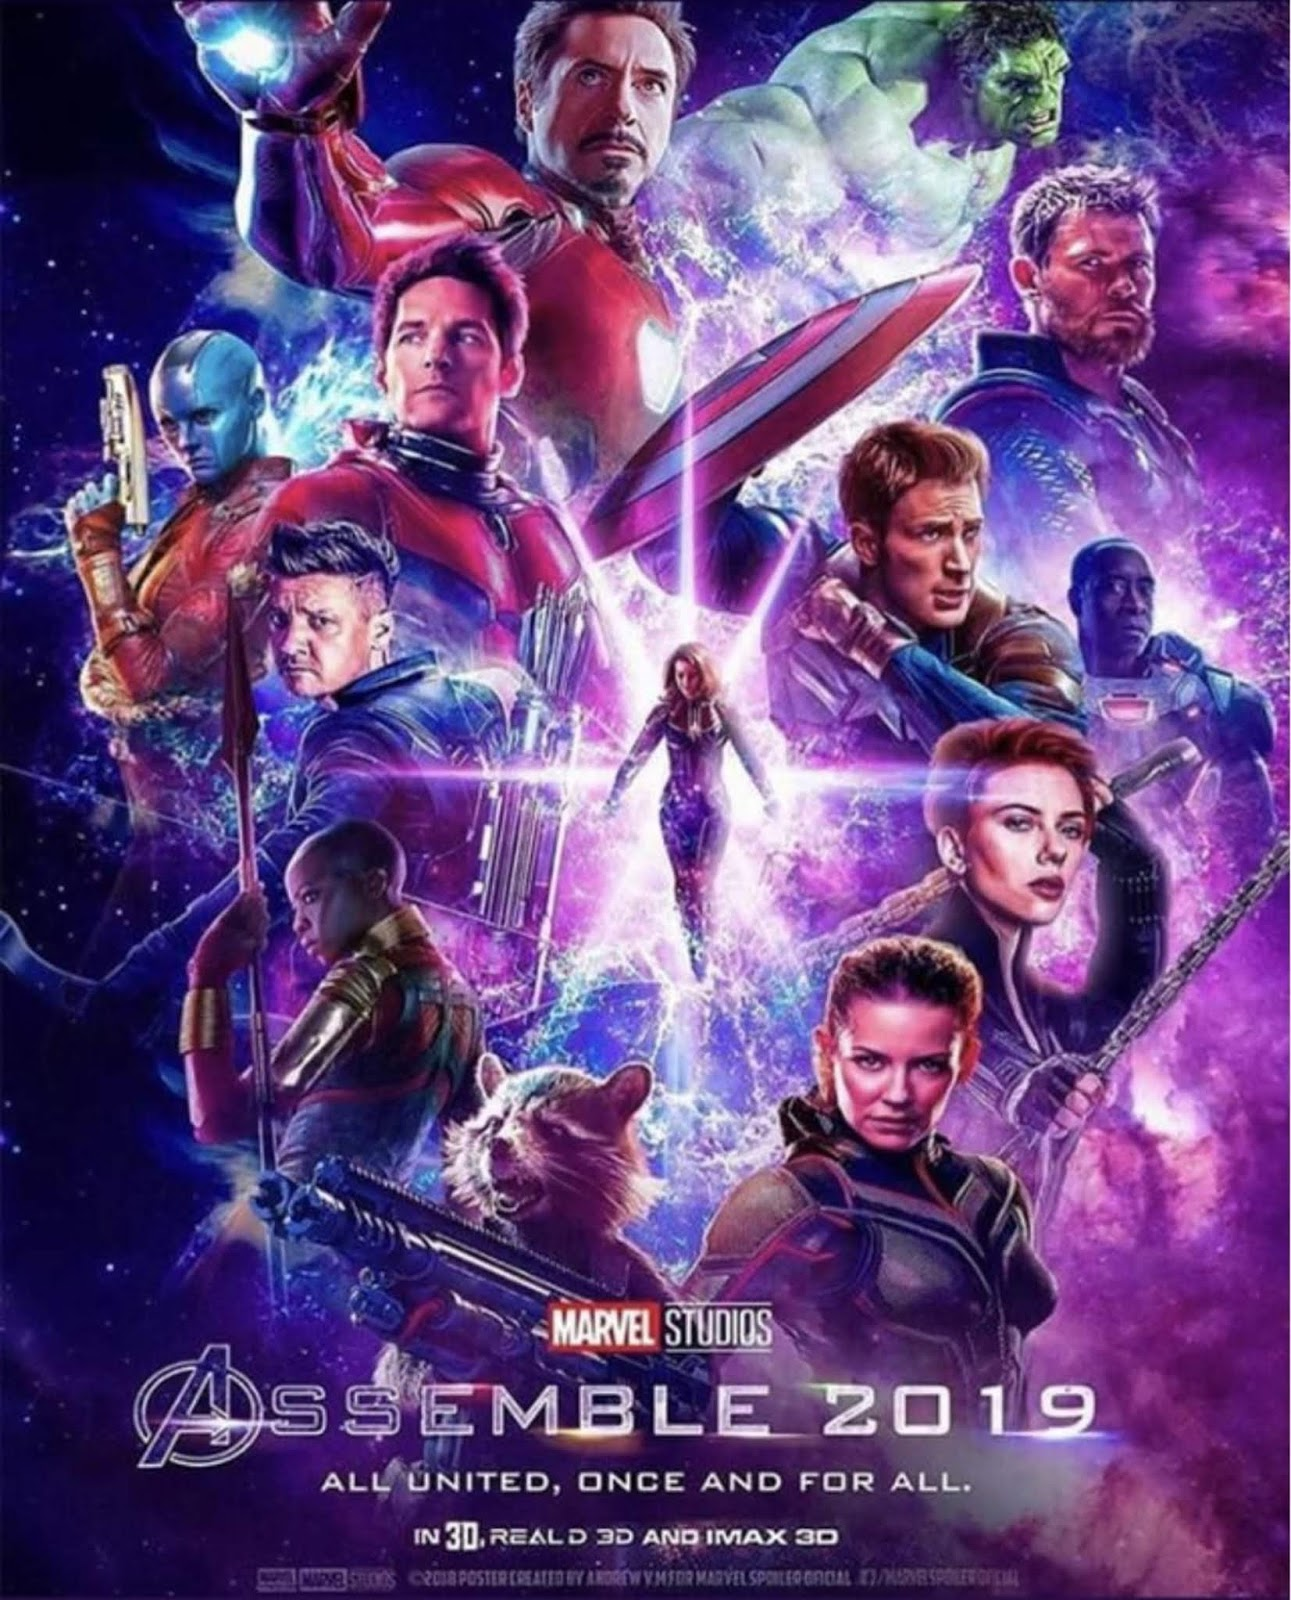 Avengers Endgame (2019) New Source English HC-CAM 720p x264 800MB